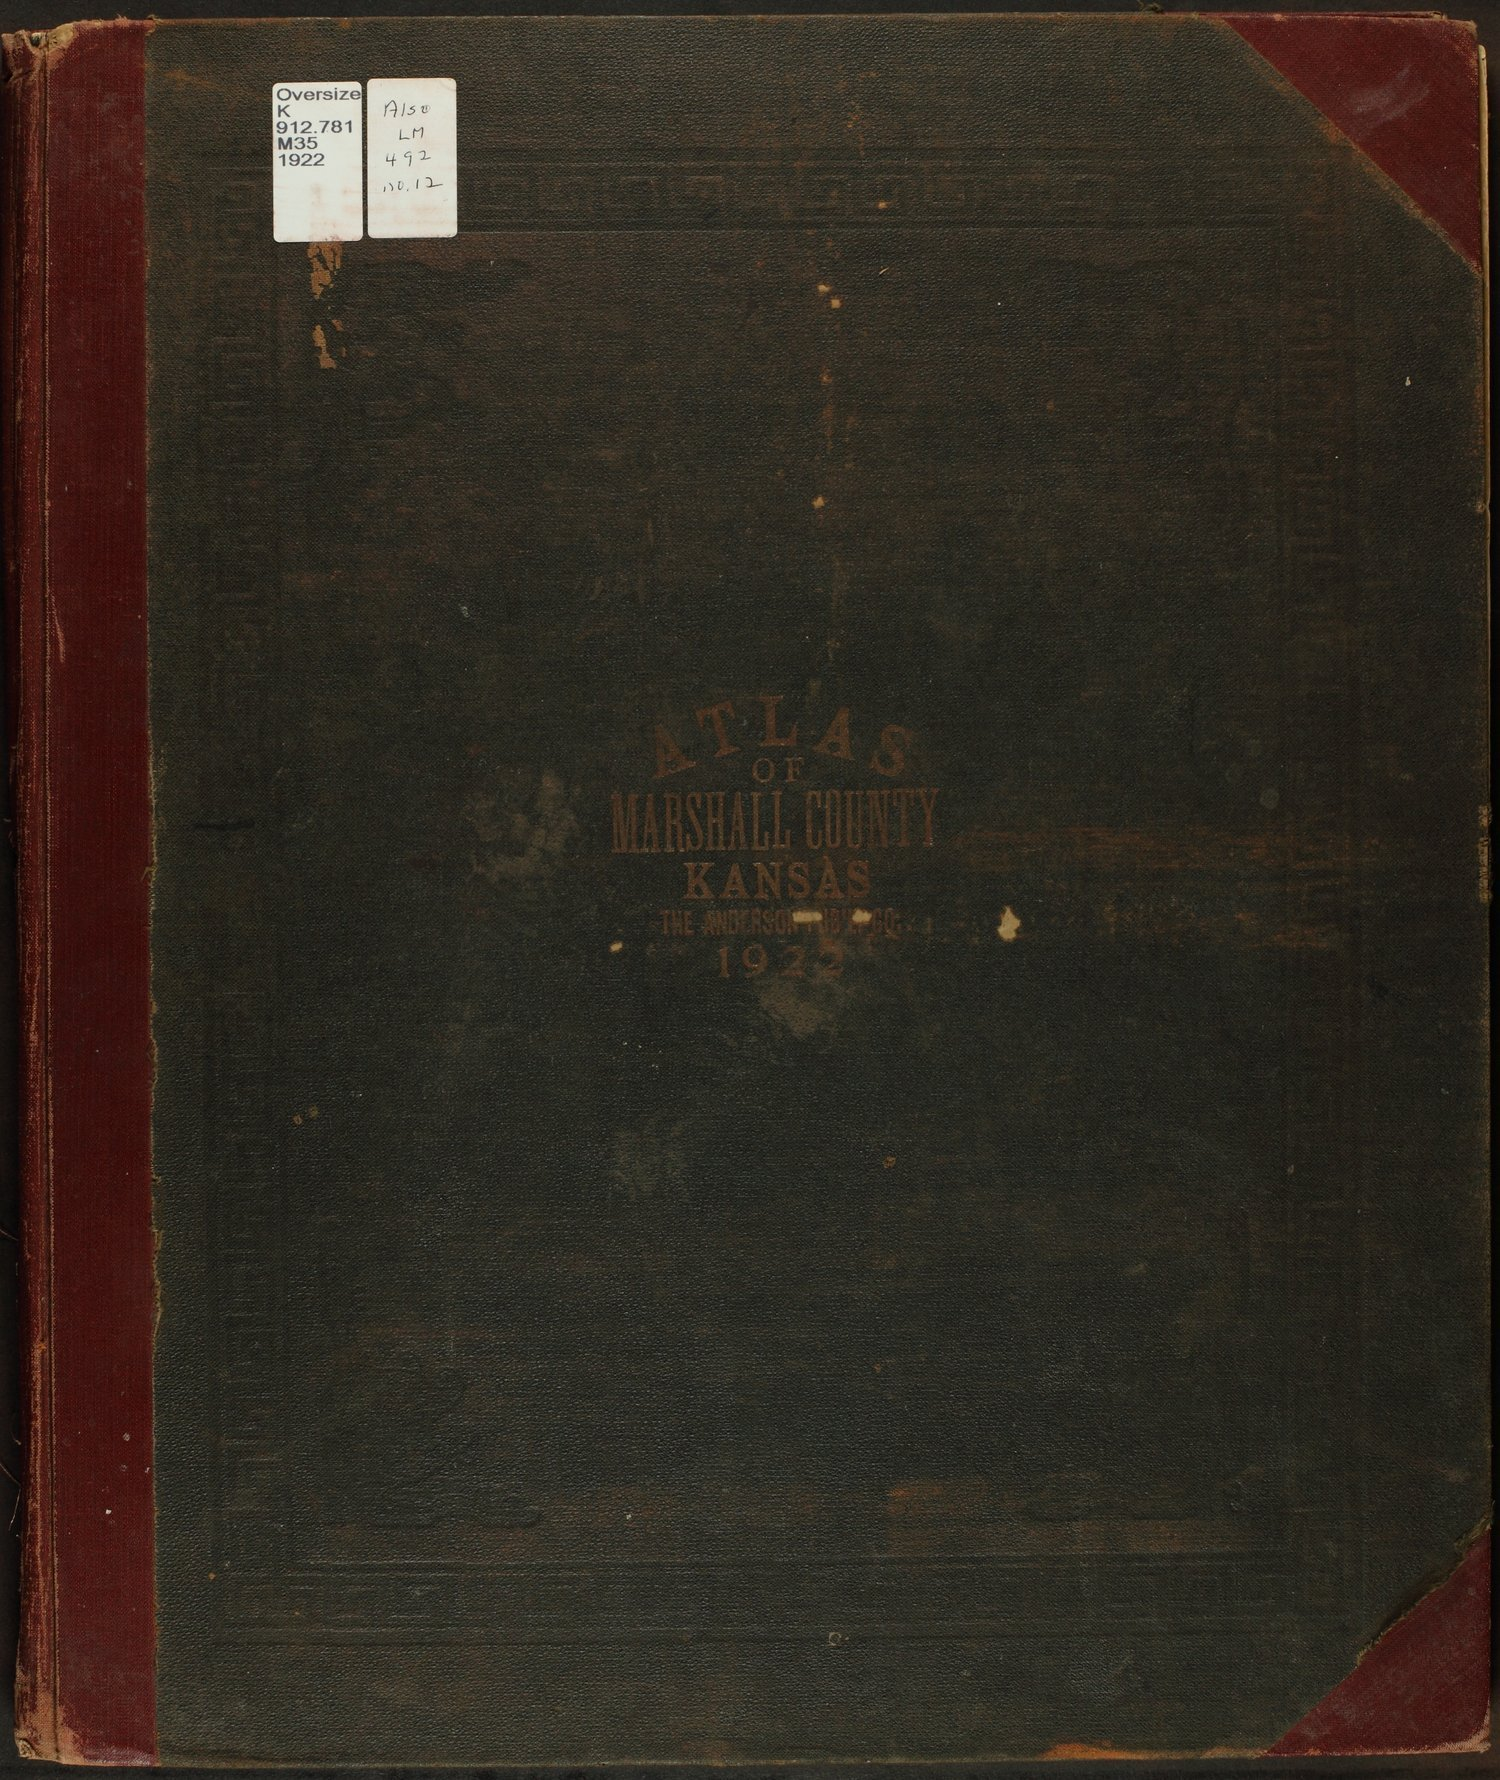 Atlas of Marshall County, Kansas - Front Cover